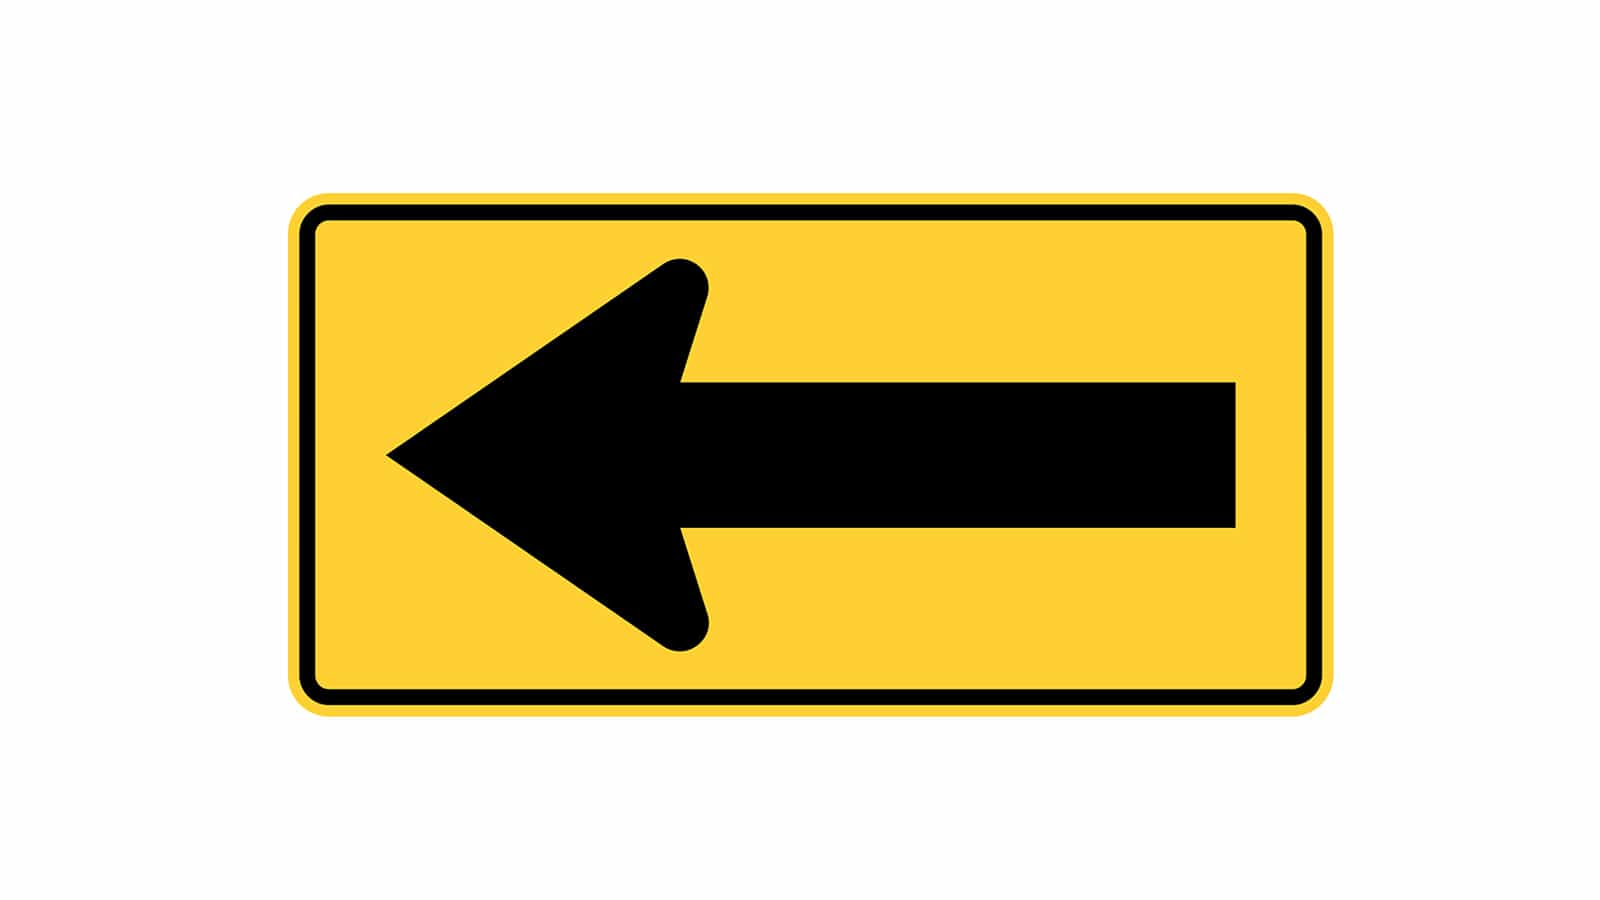 One Direction Arrow To the Left